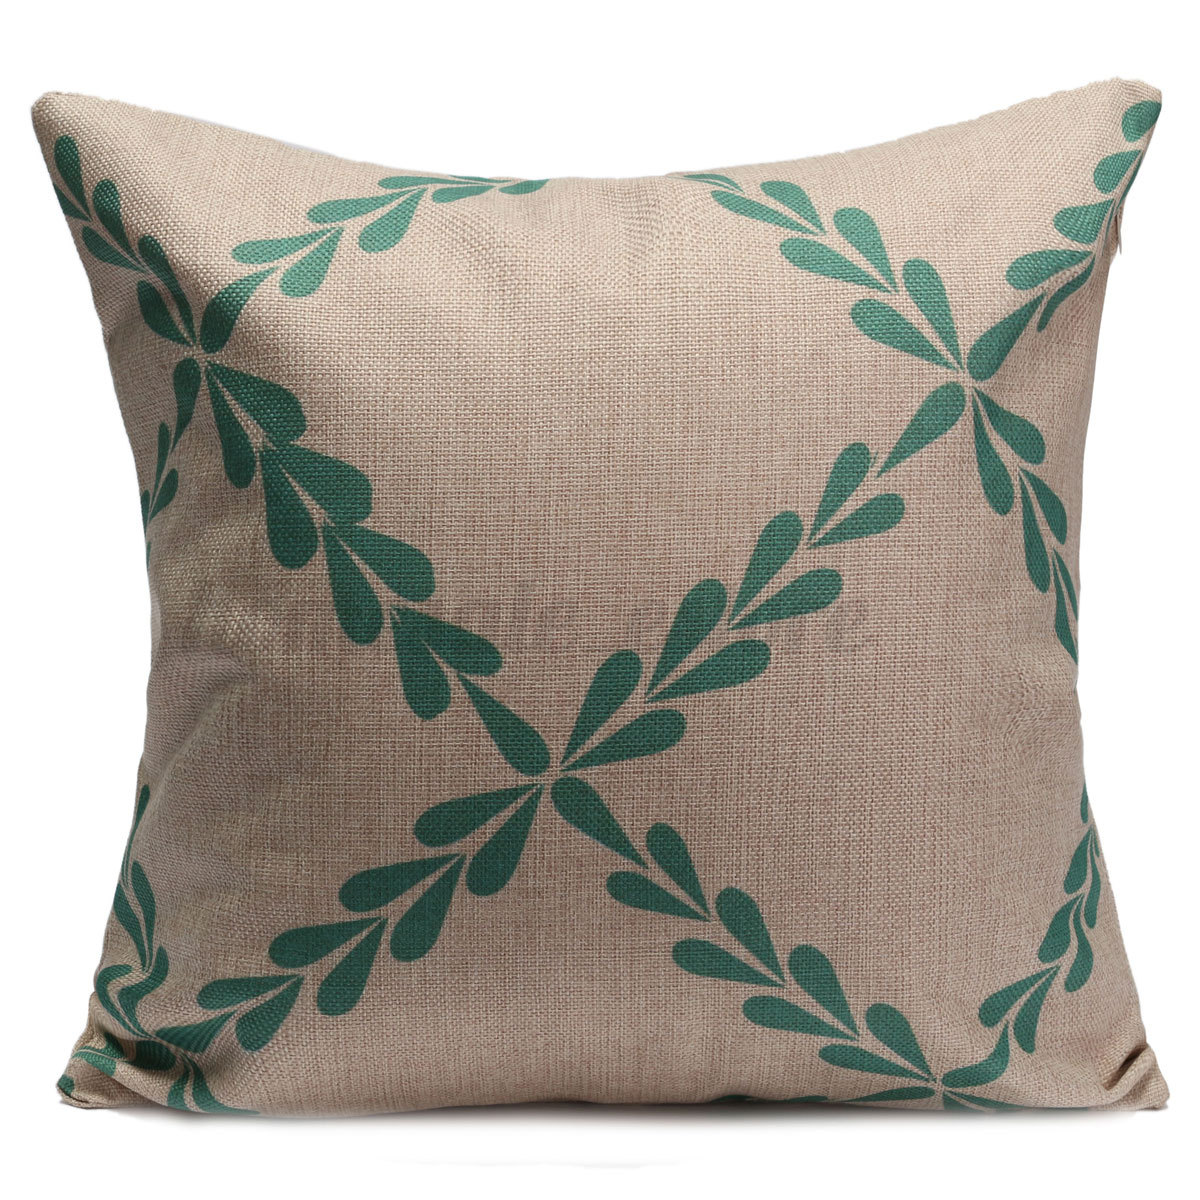 Vintage Looking Throw Pillows : Casual Style Vintage Cushion Cover Throw Pillow Covers for Home Sofa Decoration eBay